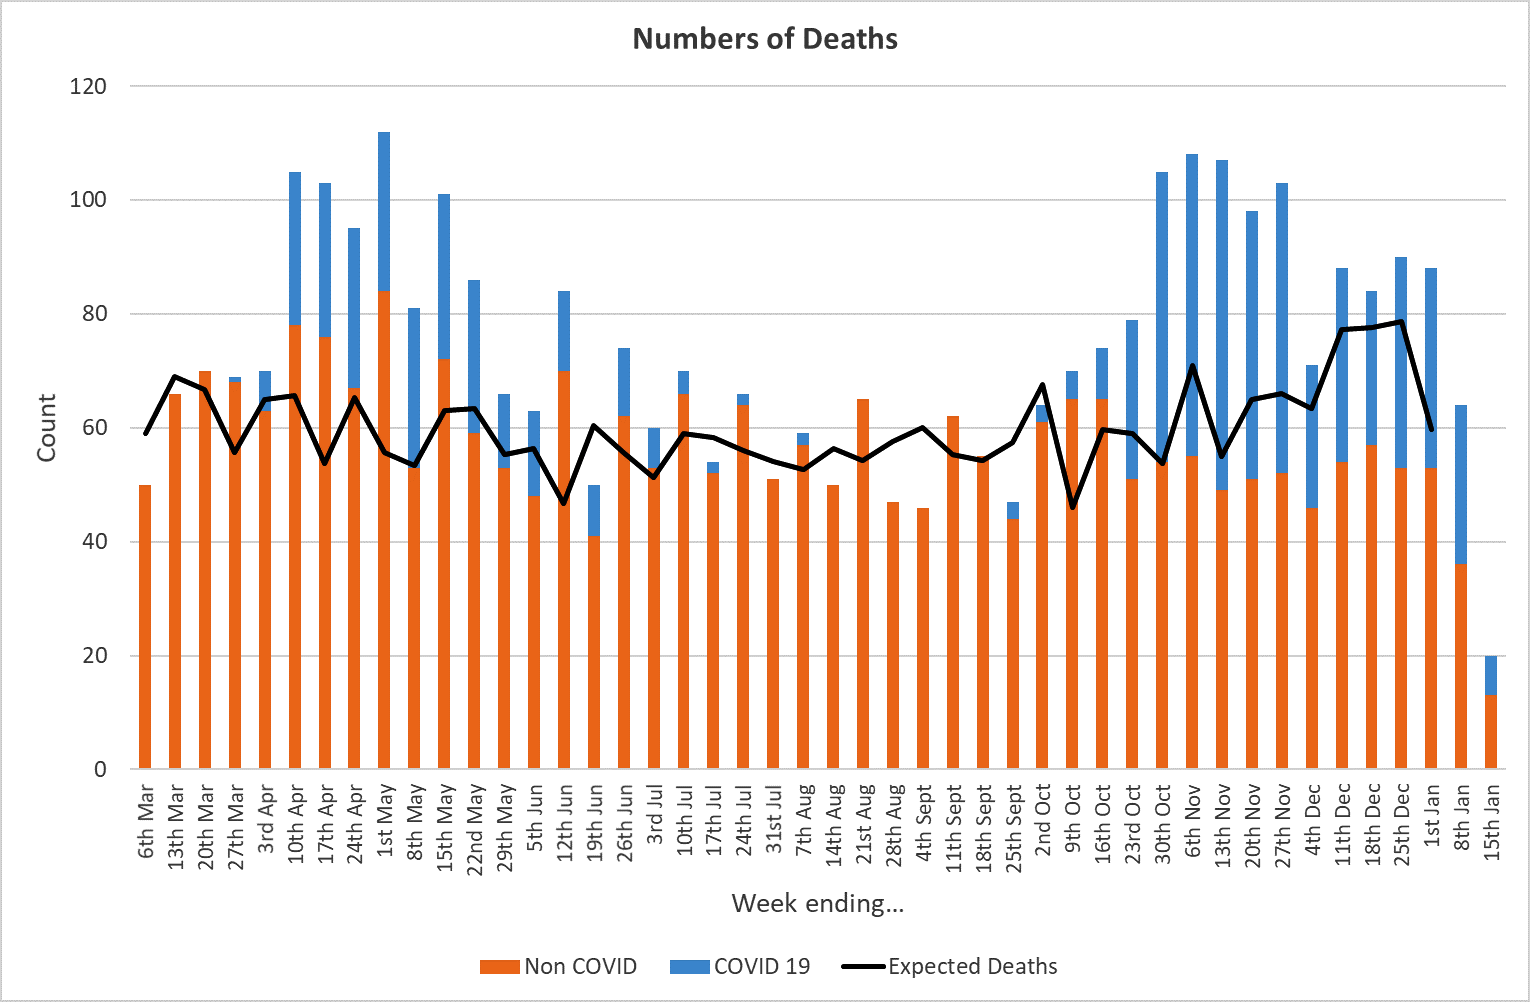 Graph showing number of deaths in Doncaster up to 15 January 2021